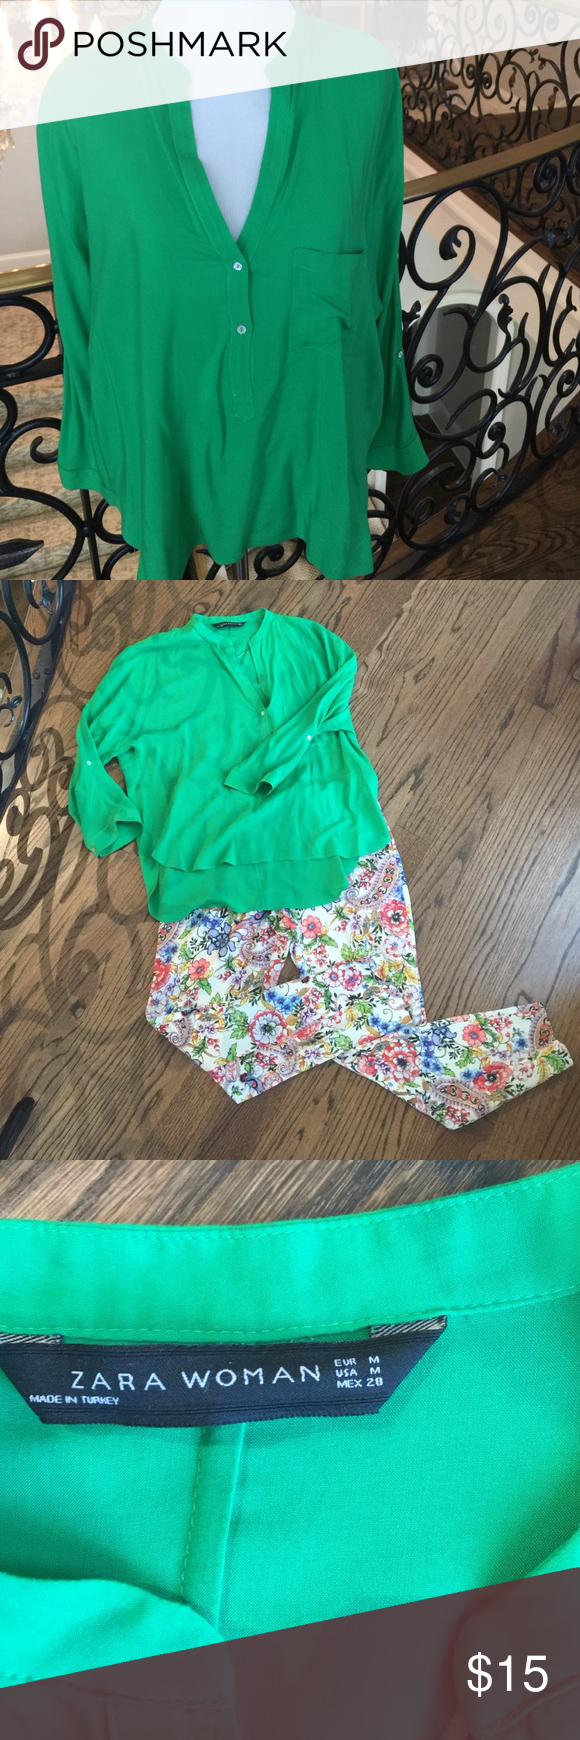 Zara bright green top This blouse buttons half way down. Has buttons on the sleeve to roll up and cinch. Slightly longer in back. EUC. Bought at the Zara in Florence. Zara Tops Blouses